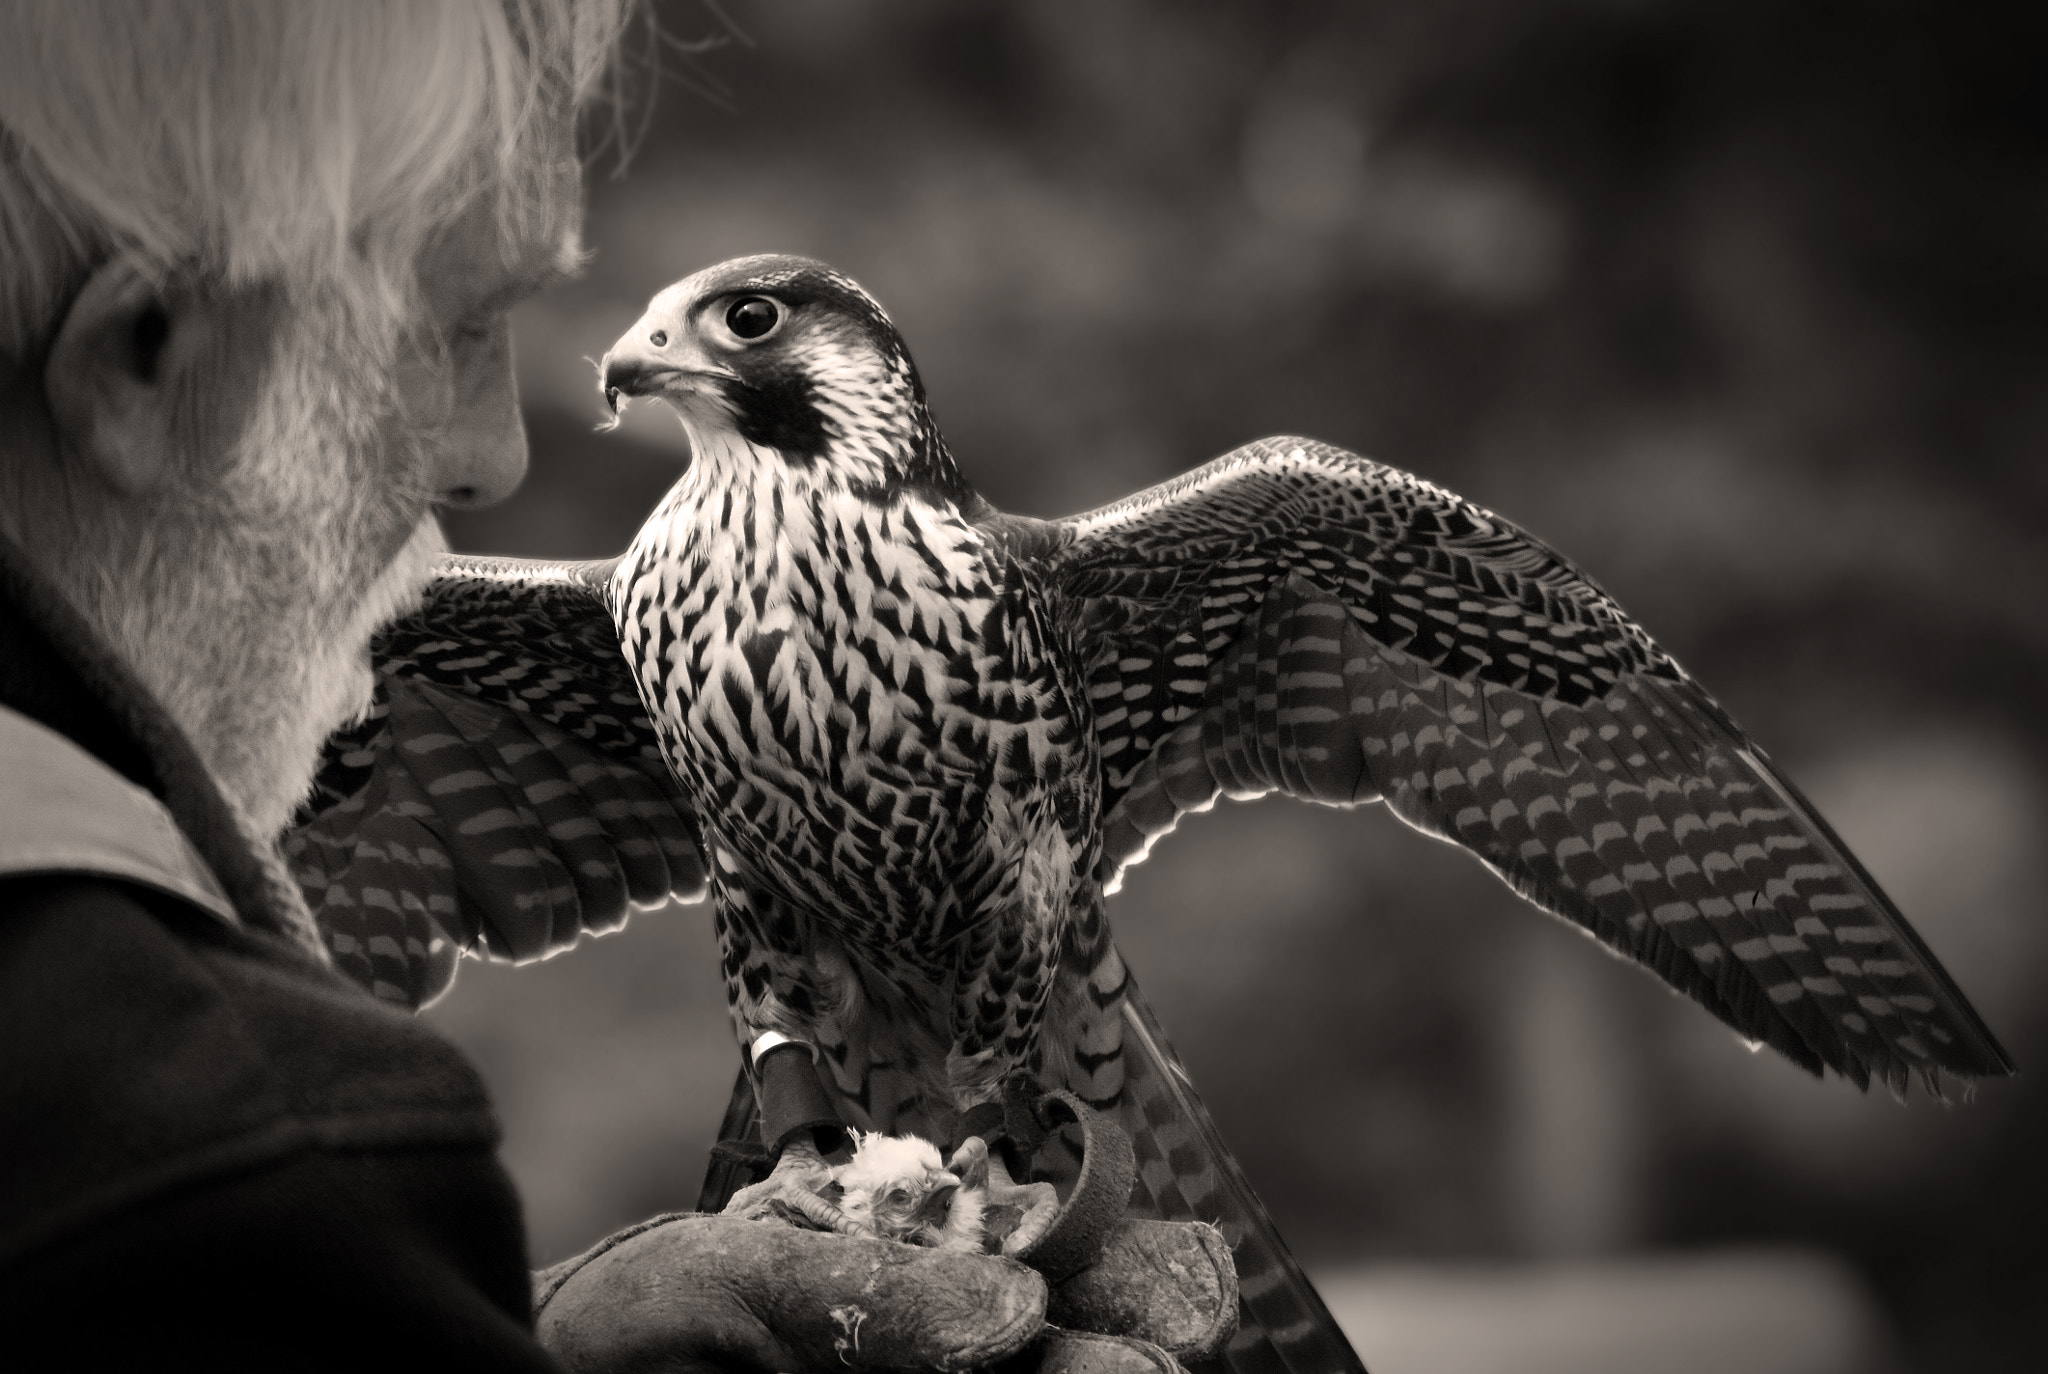 Photograph The Falconer by Andi Gast on 500px